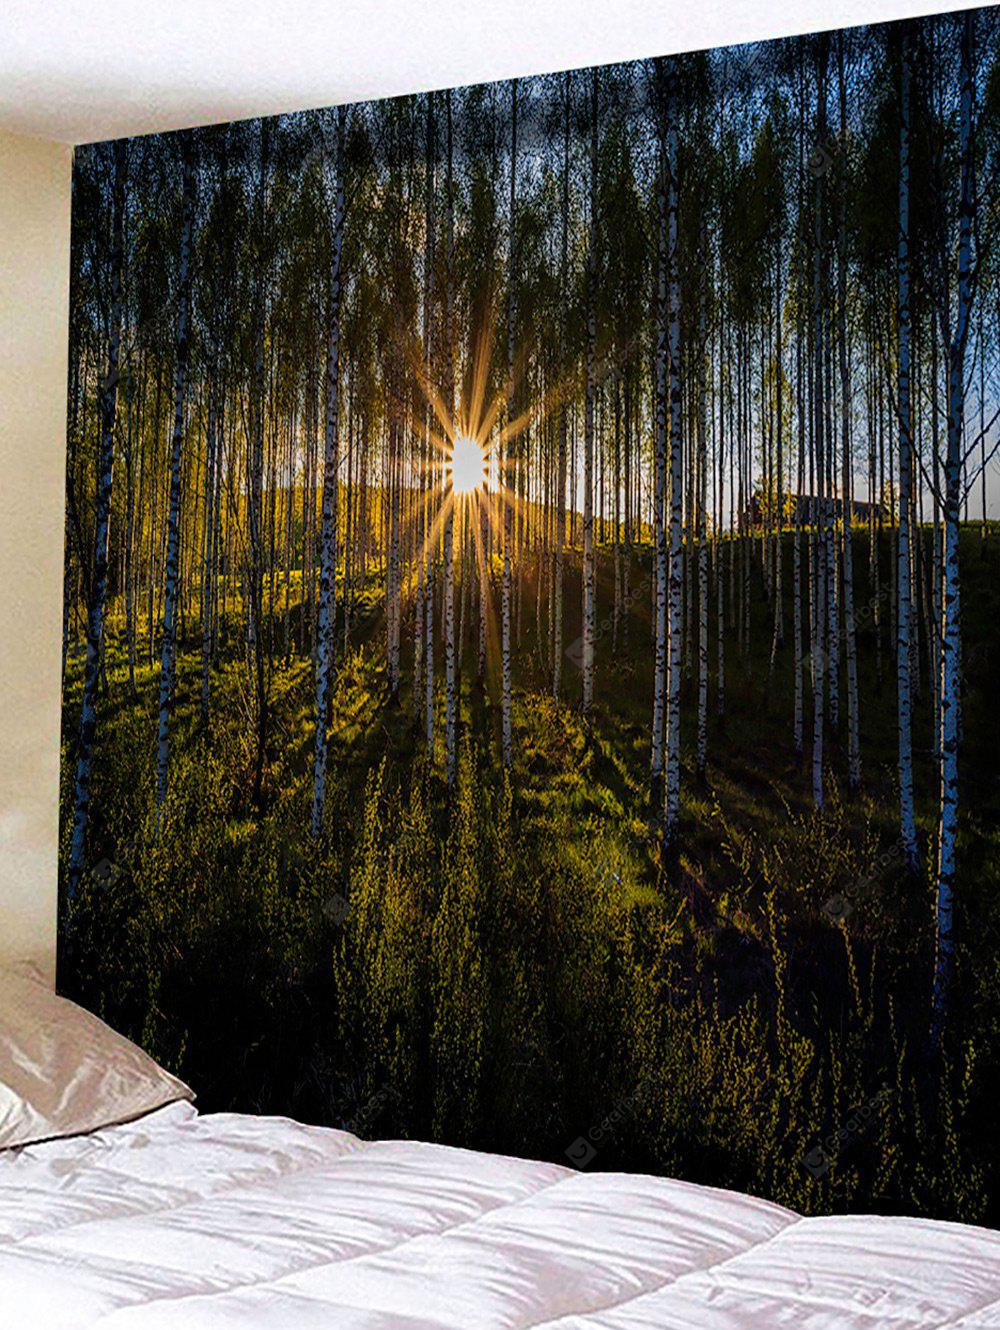 Sun Forest Print Tapestry Wall Hanging Decor